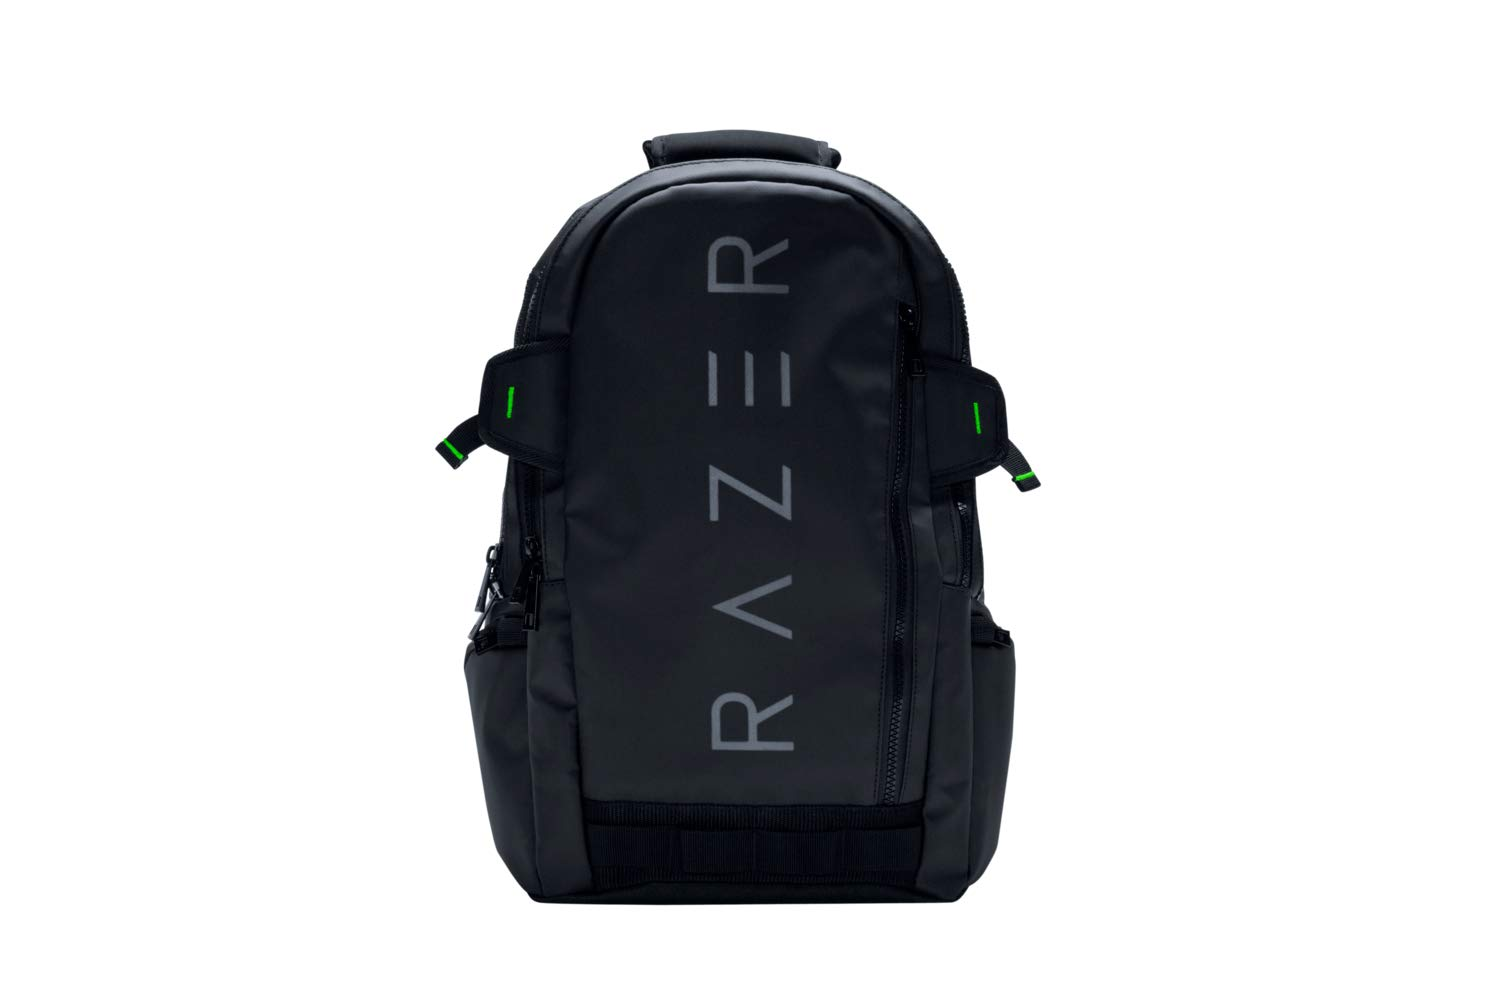 Razer Rogue v1 13.3'' Gaming Laptop Backpack: Tear and Water Resistant Exterior - Scratch-Proof Interior - Dedicated Laptop Compartment - Made to Fit 13 inch Laptops by Razer